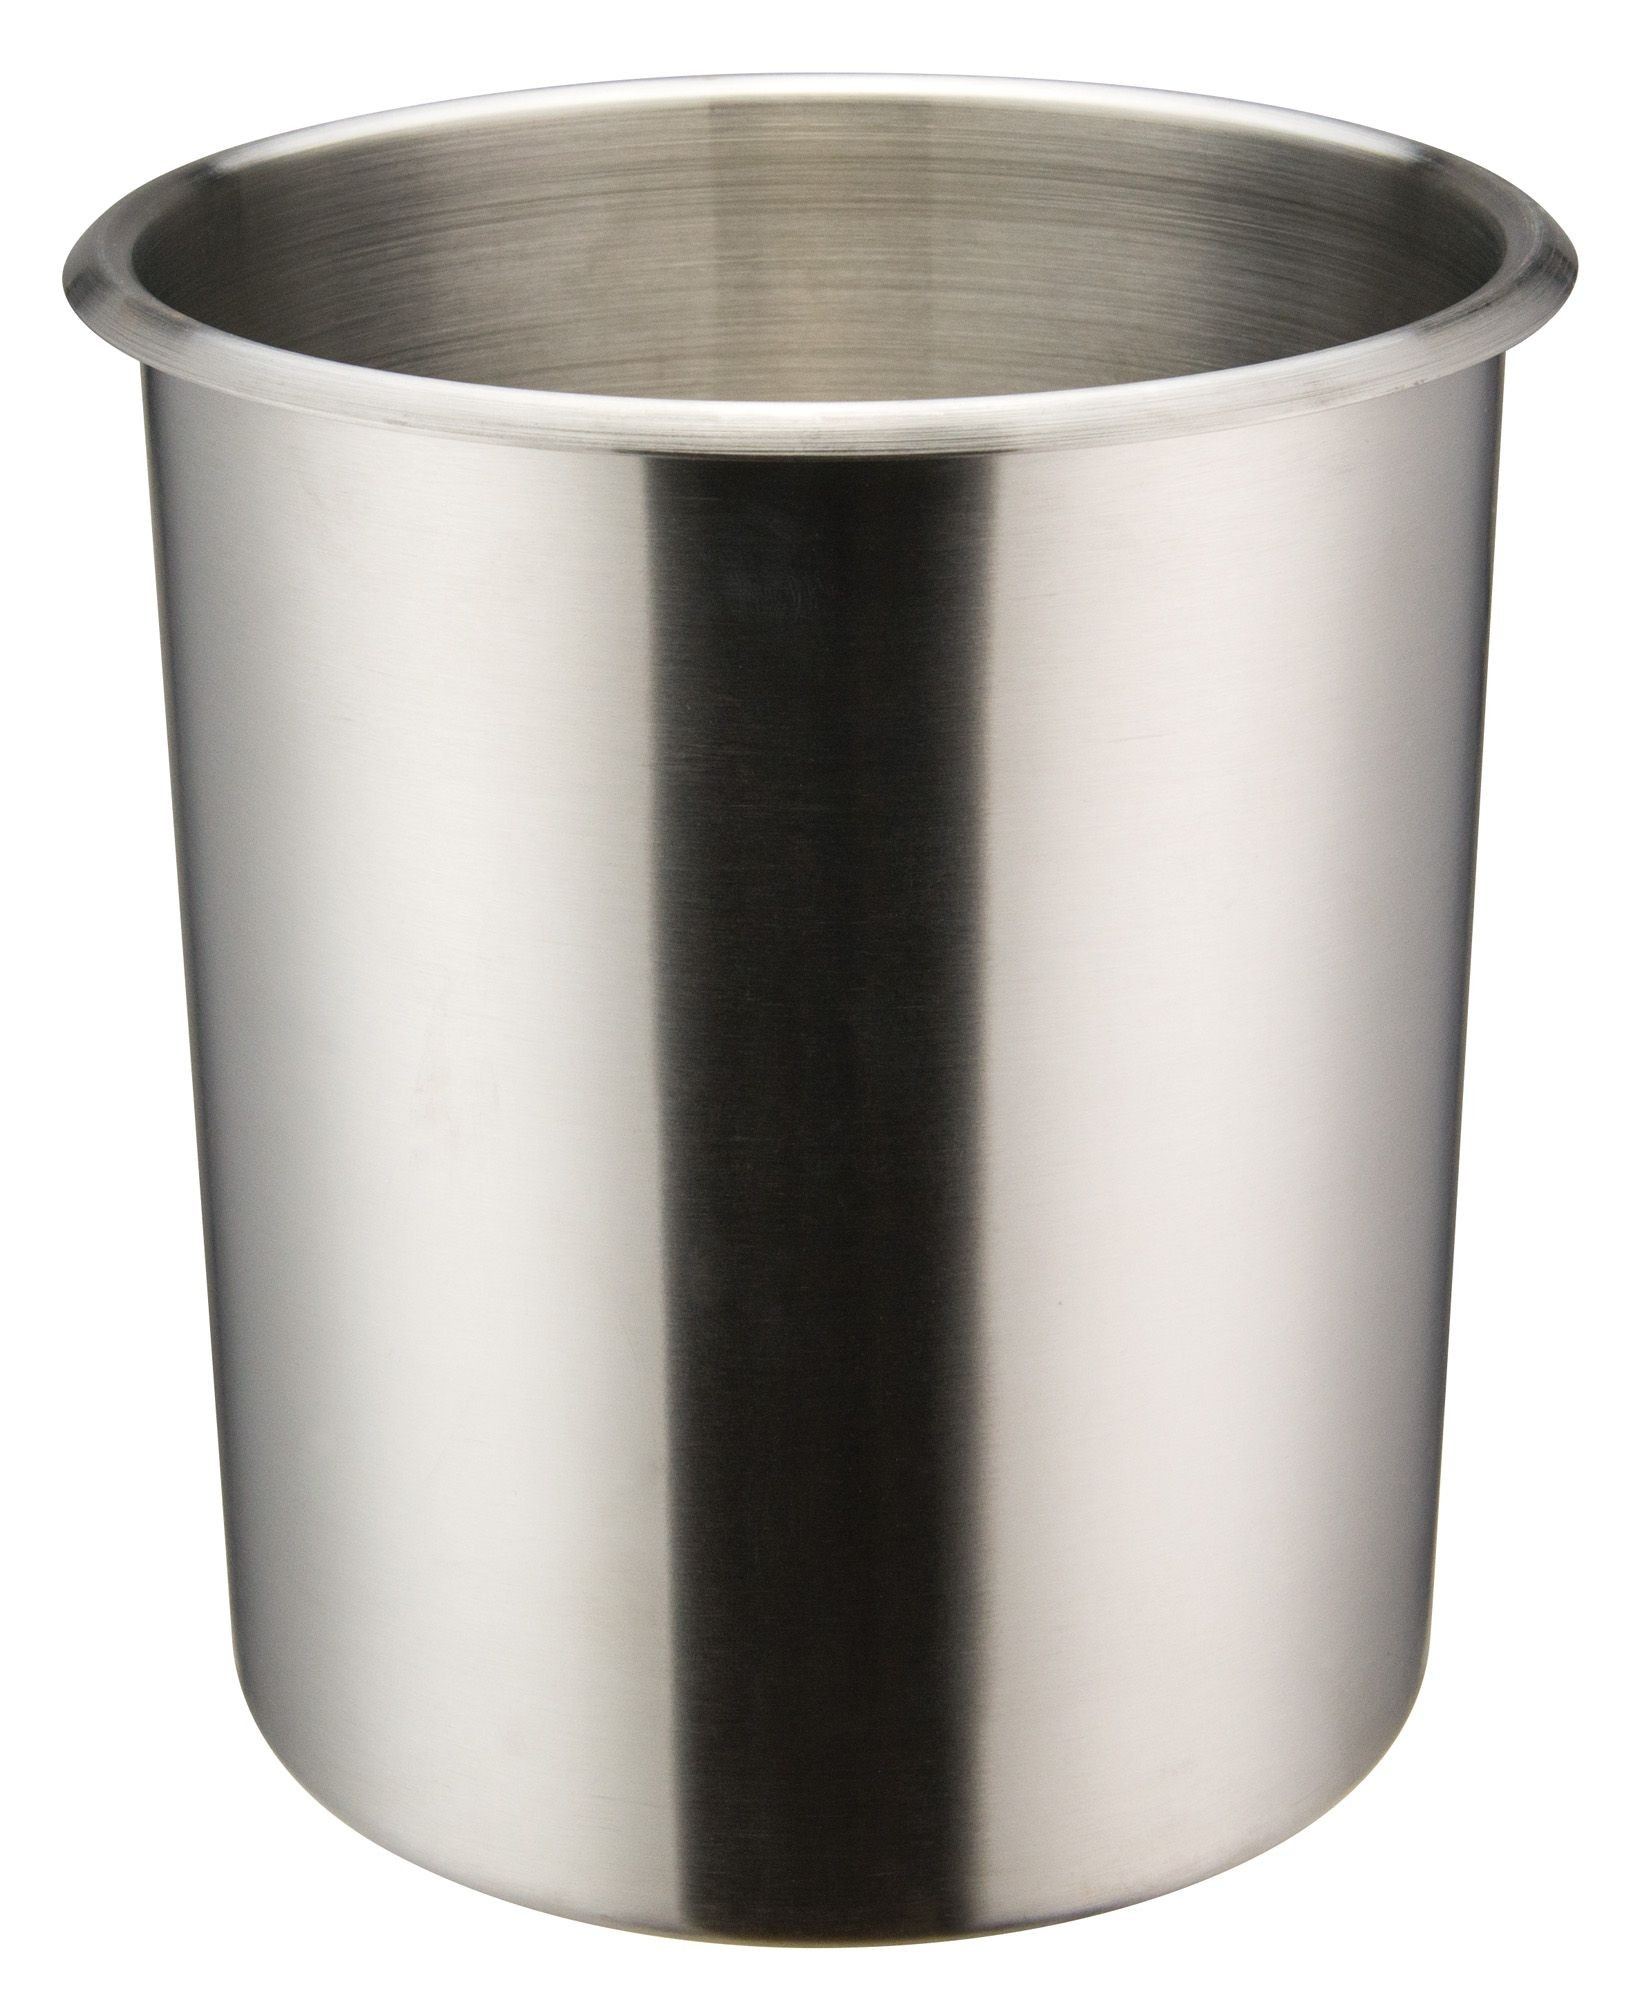 Winco BAM-6 Stainless Steel 6 Qt. Bain Marie